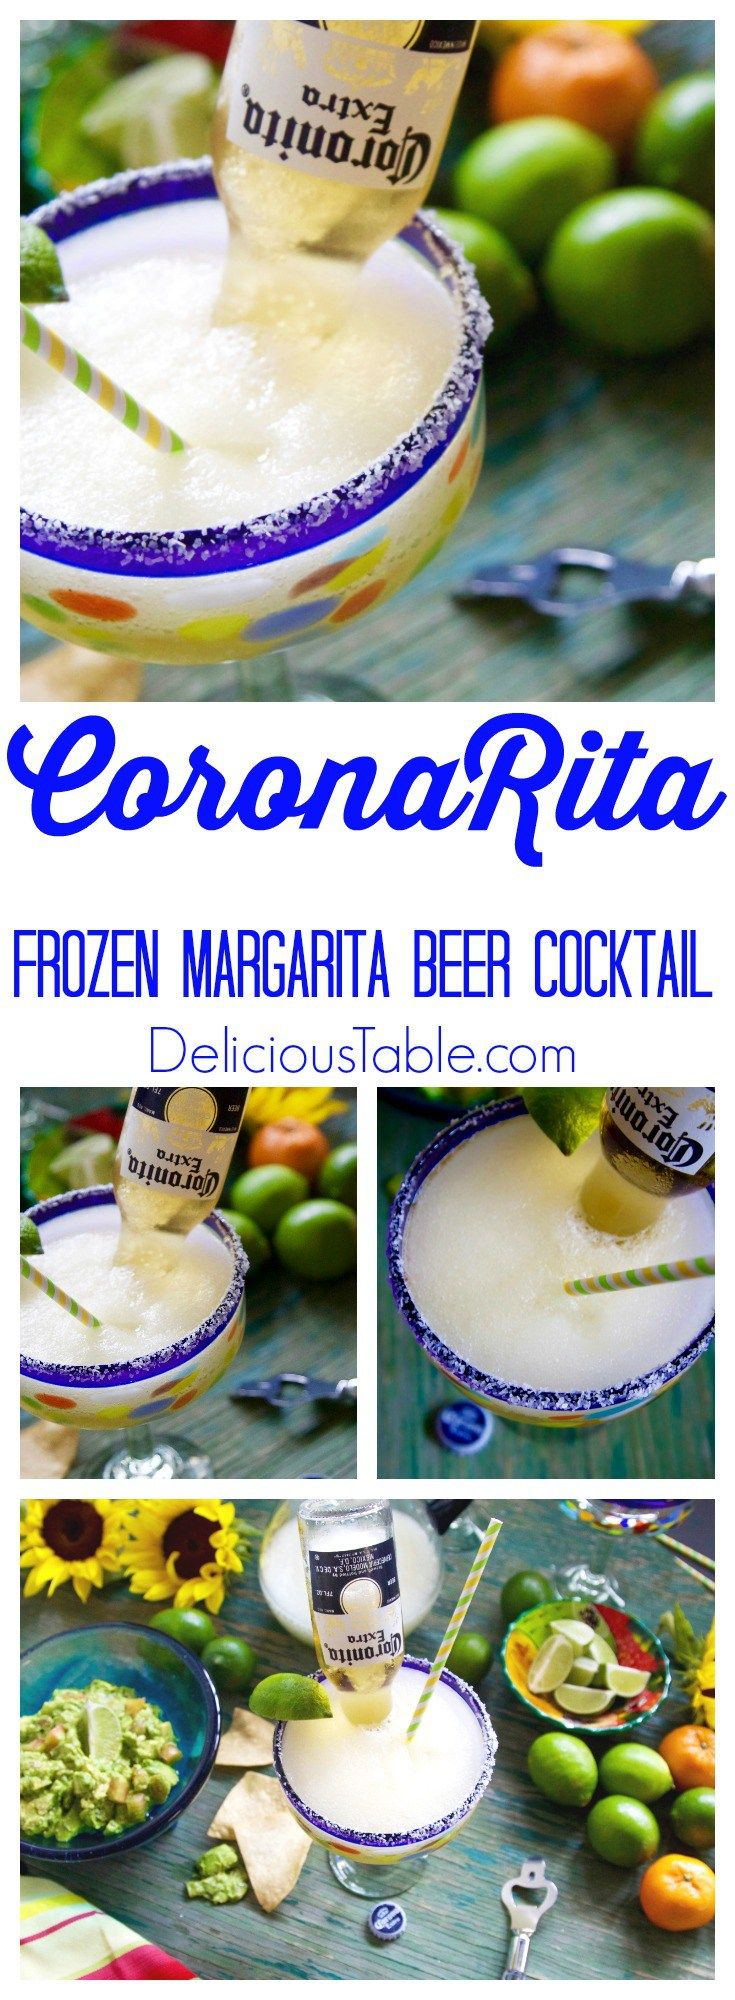 CoronaRita Frozen Margarita Beer Cocktail is perfect when you can't decide between a margarita and a icy cold Corona, you can have both! Serve with guacamole and chips!